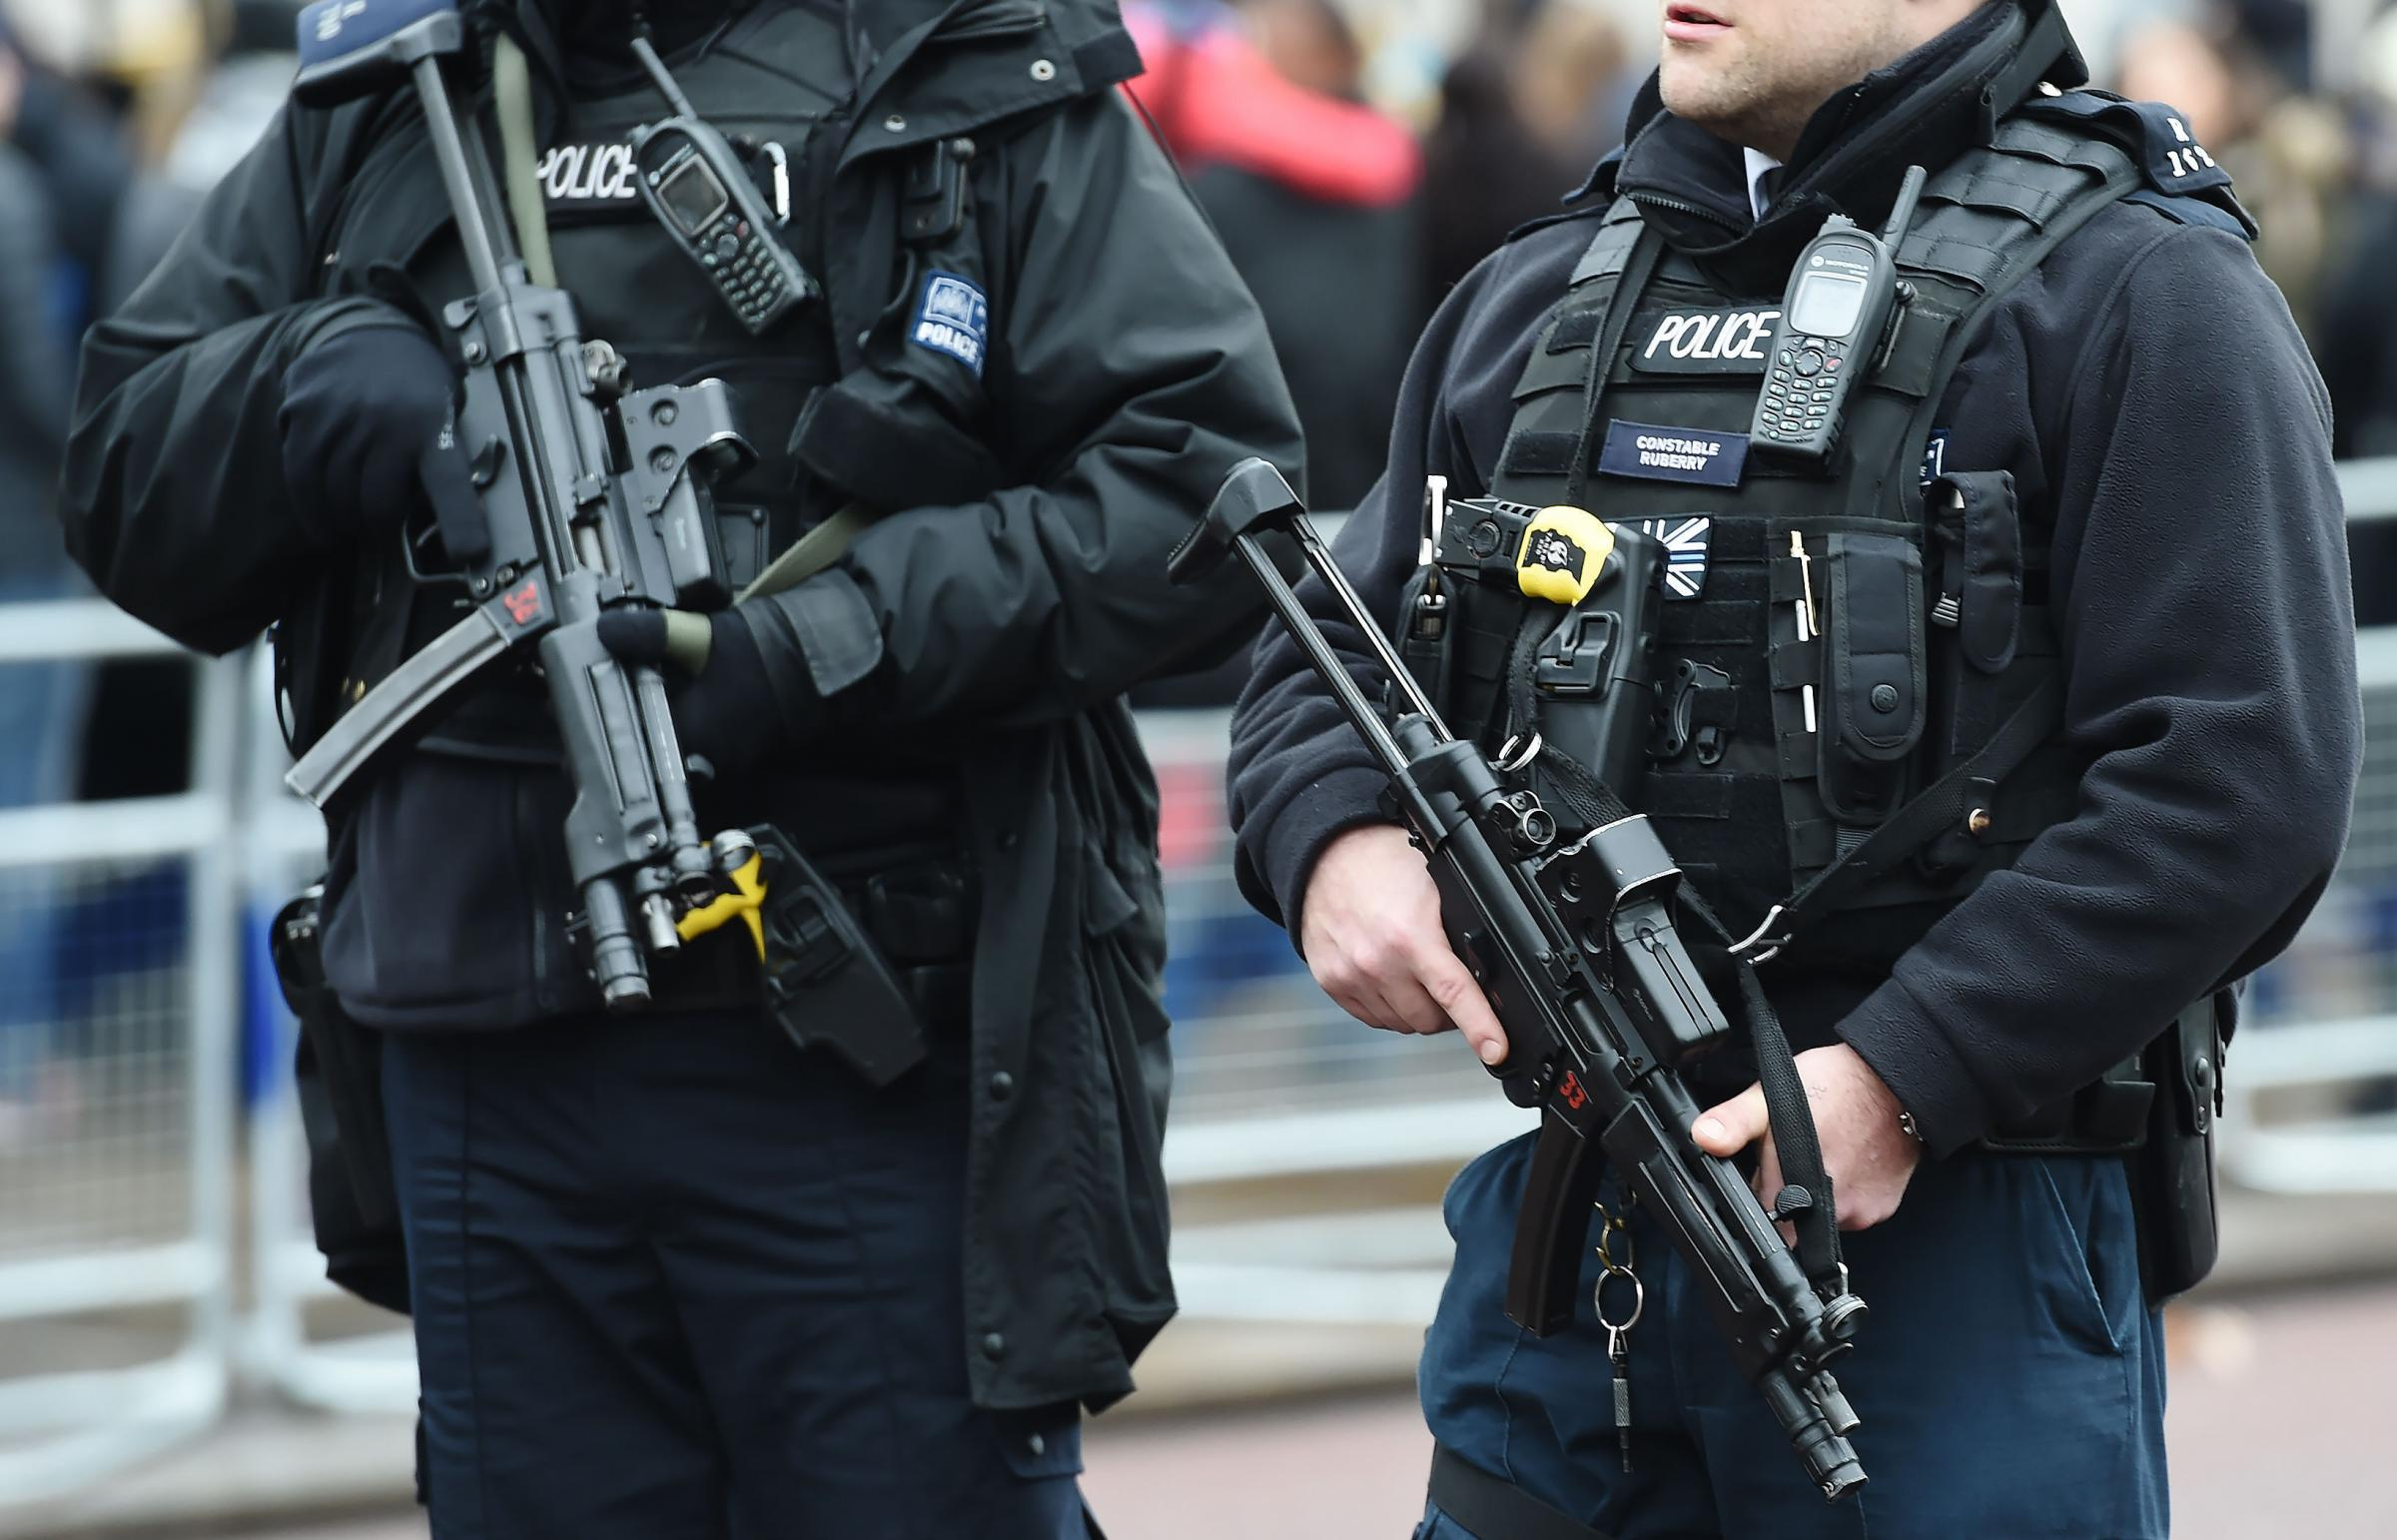 File photo dated 21/12/16 of armed police. Thousands of police officers will be asked if they want to be routinely armed in a major survey launched on Monday. PRESS ASSOCIATION Photo. Issue date: Monday January 9, 2017. All members of the Metropolitan Pol